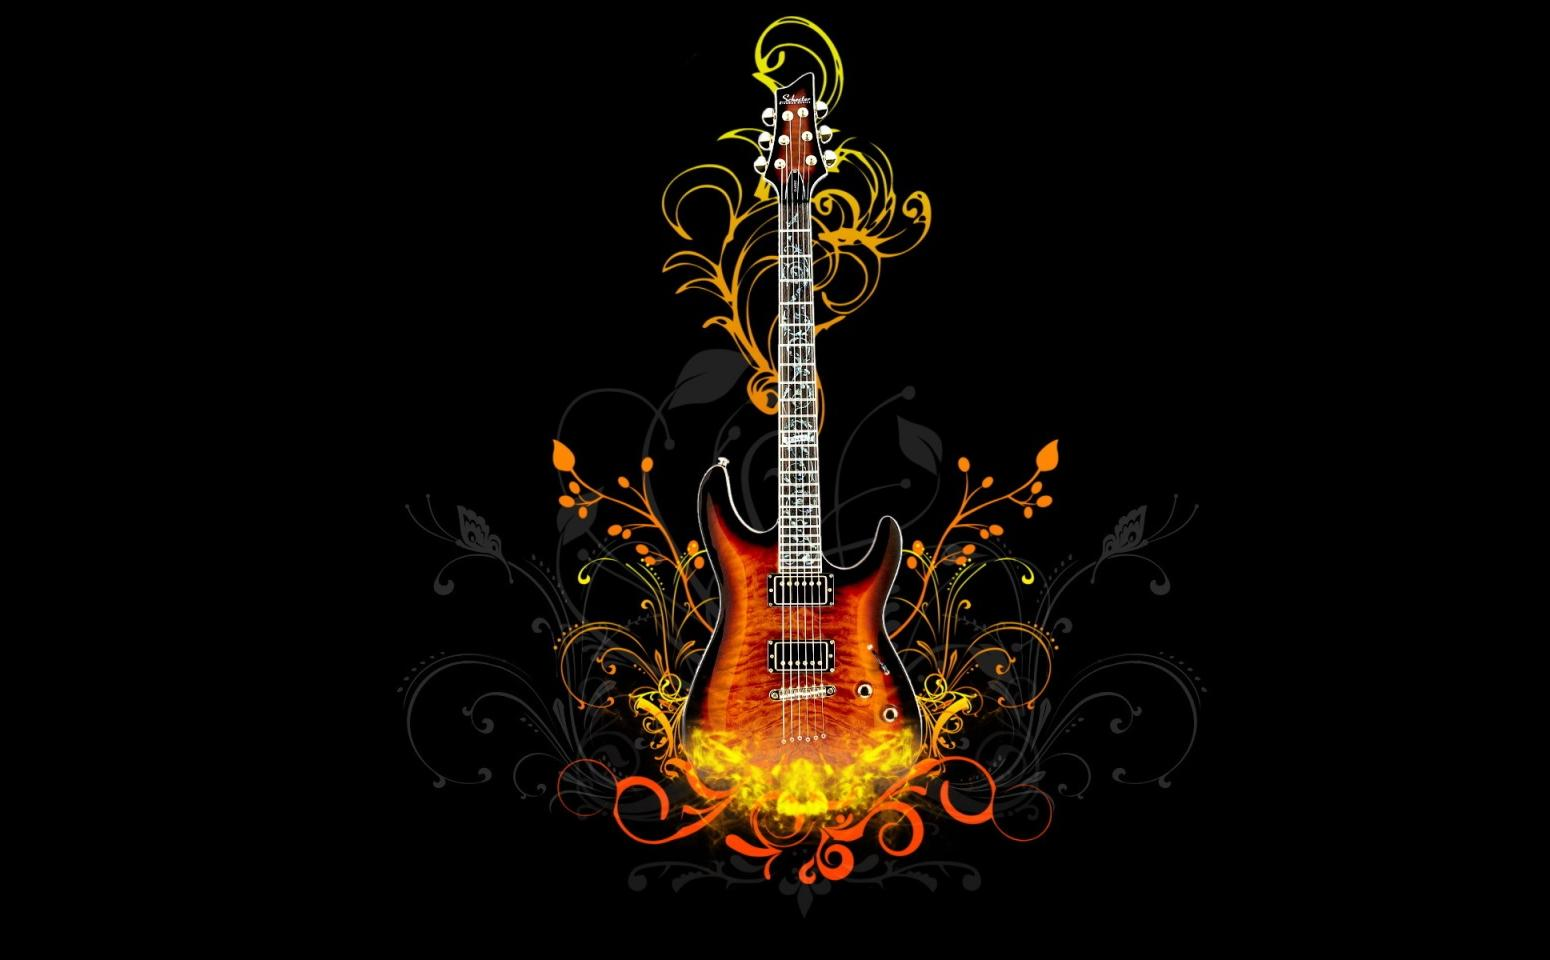 Rock Music Wallpaper: Picture Gallery: 11/11/11